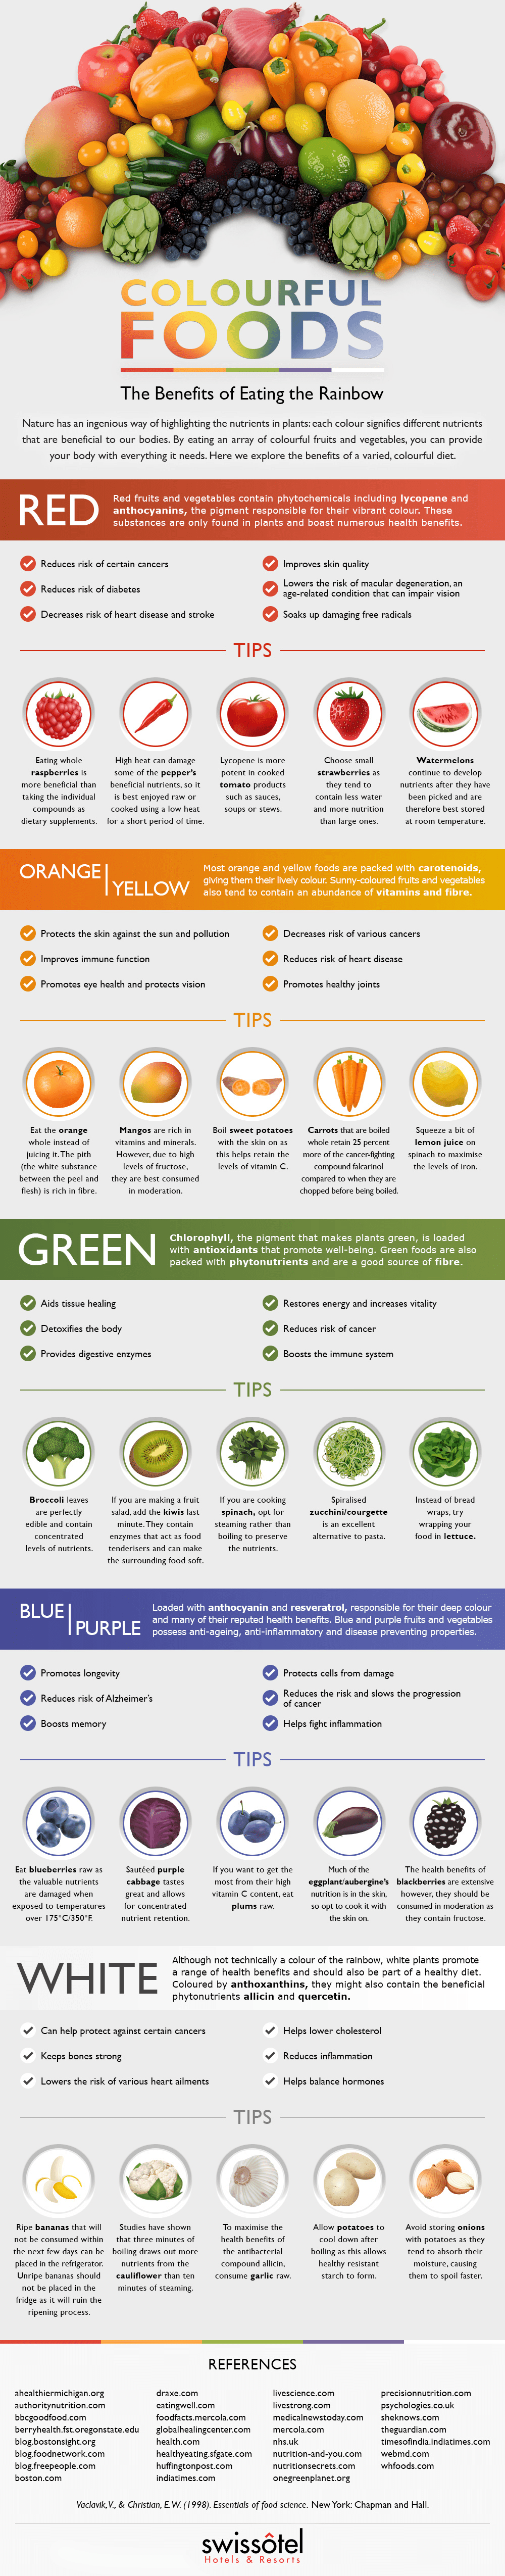 Browse our illustrative guide to each food colour and discover the health benefits for including them in your daily diet.